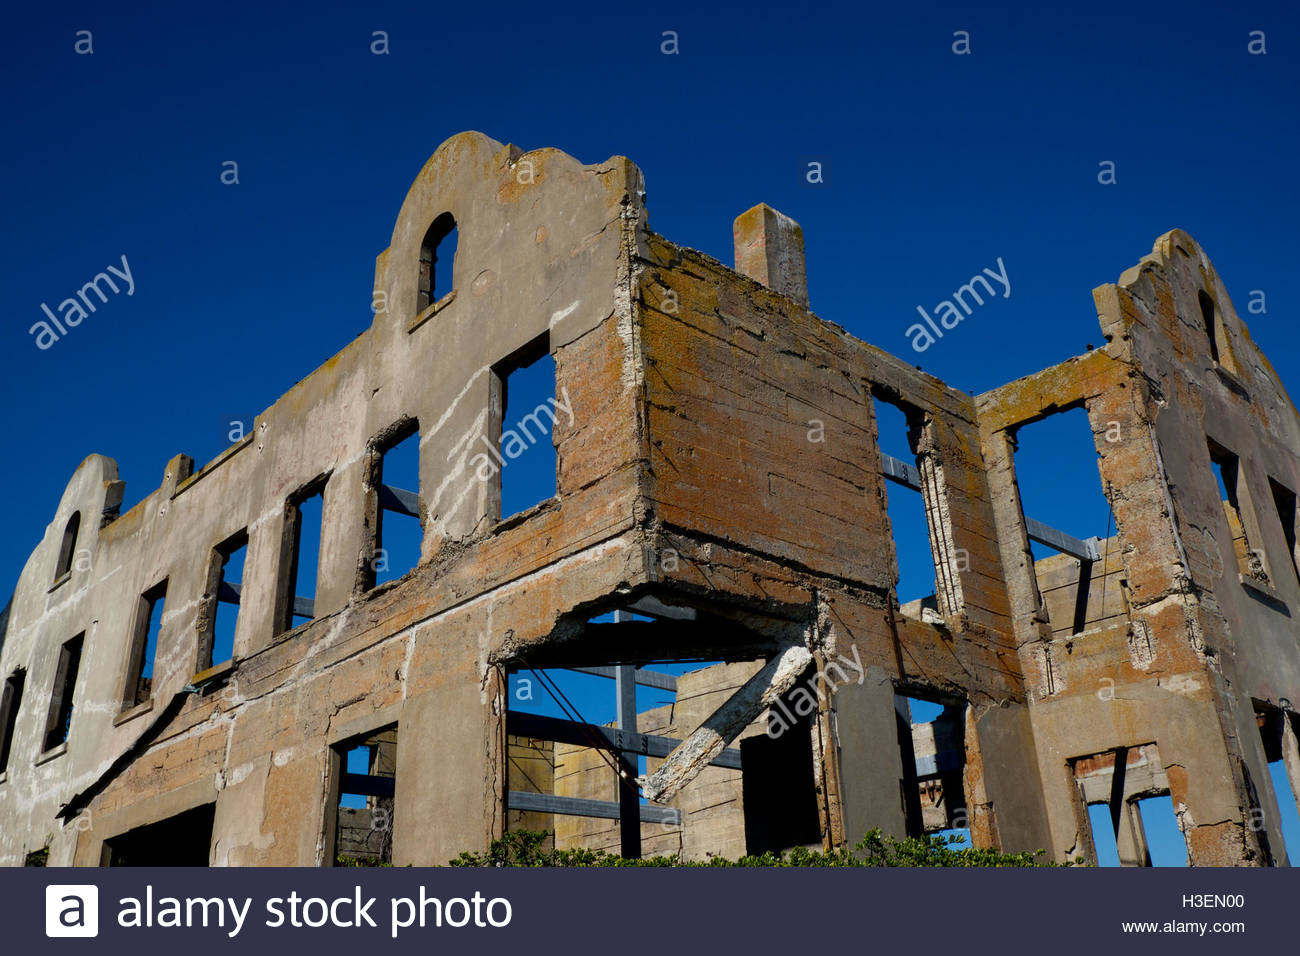 The crumbling remains of a staff building at Alcatraz Federal Penitentiary in San Francisco, California. - Stock Image